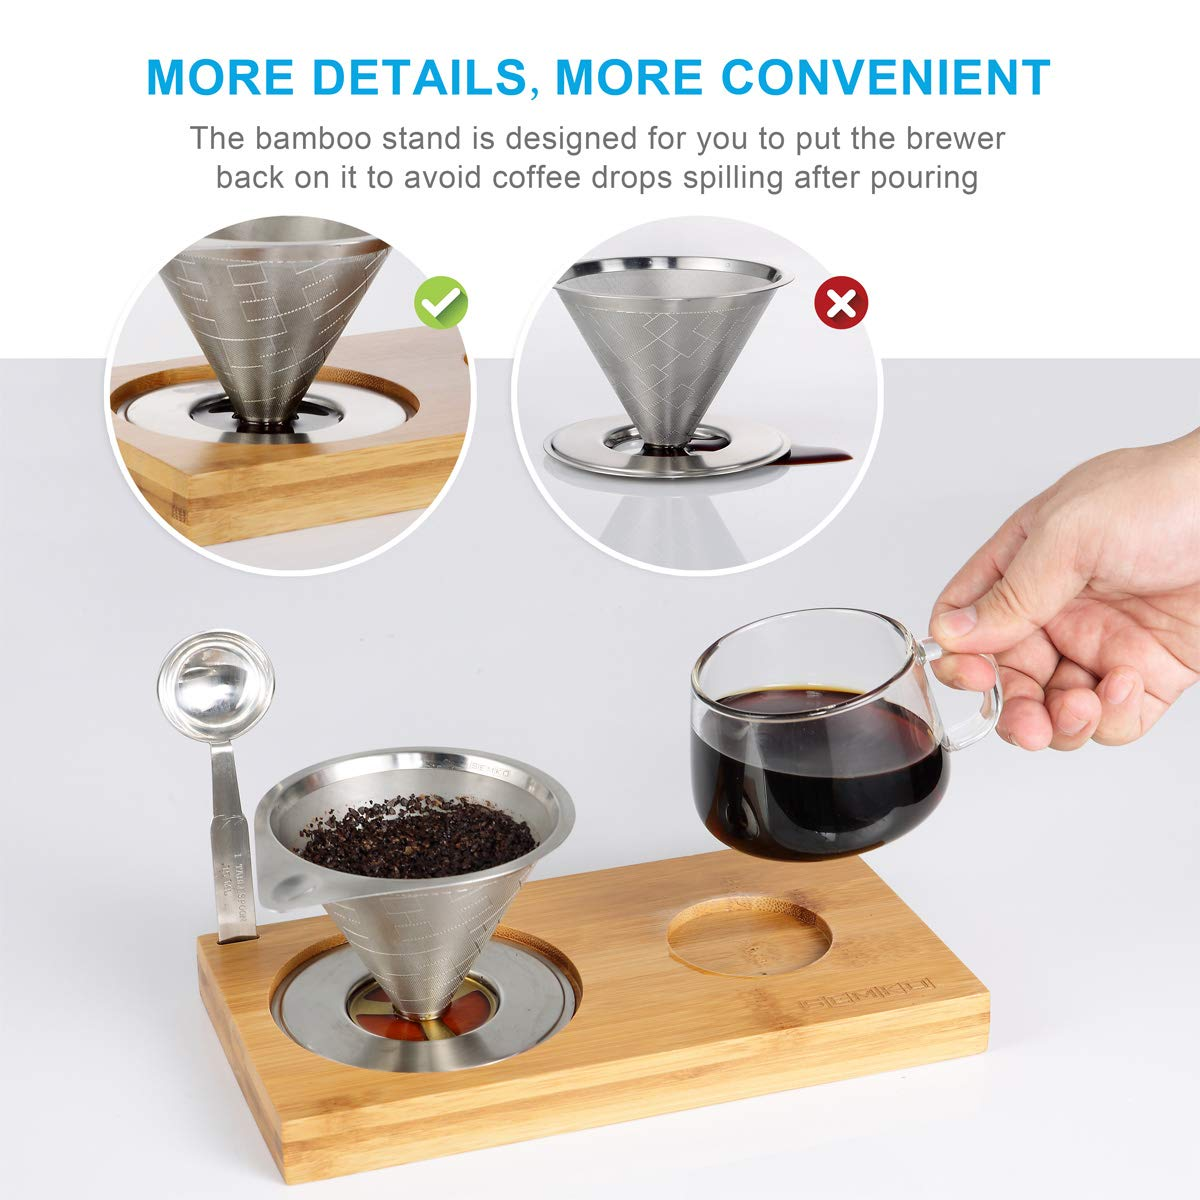 4 pcs/set, Single Serve Coffee Maker, Stainless Steel Coffee Dripper, Pour Over Coffee Maker, One Cup Coffee Maker Set, 8 oz Coffee Cup, Convenient Compact Dishwasher Safe Paperless Gift-ready Package by SEMKO (Image #4)